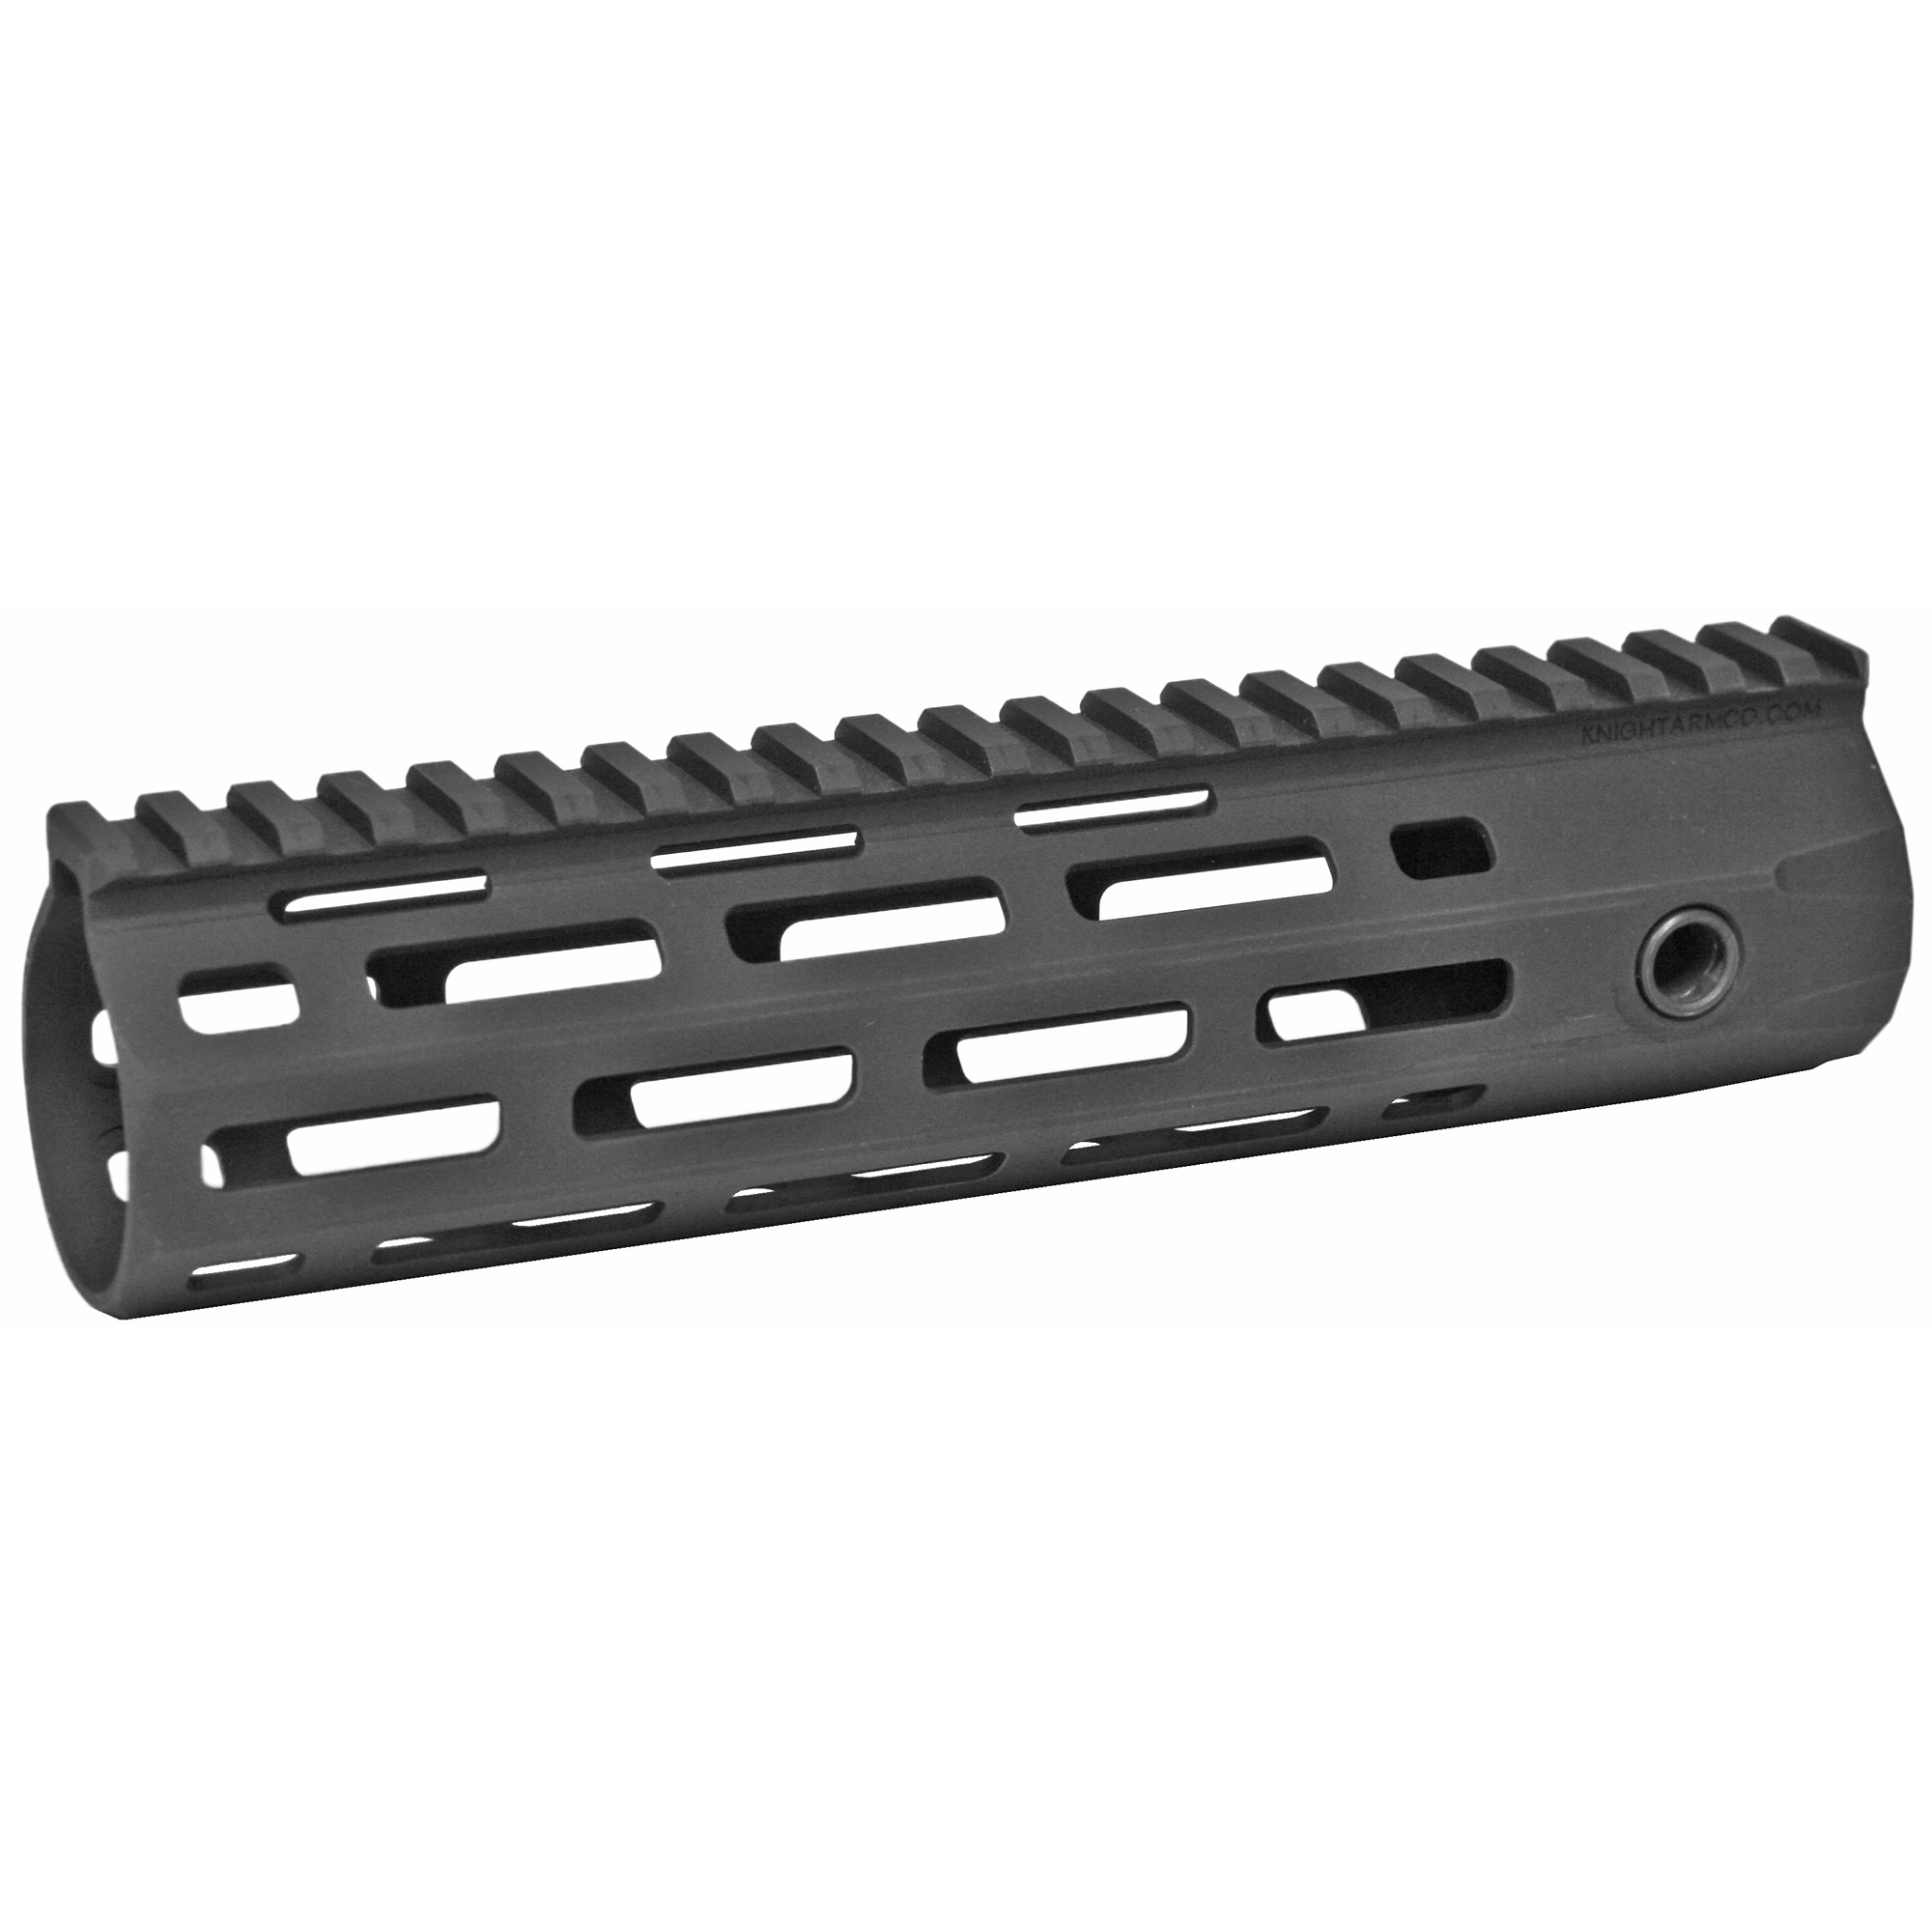 """Knights Armament Co.'s URX 4 8.5"""" M-LOK Forend Assembly Kit is a fully modular design that utilizes the revolutionary M-LOK accessory mounting system. The URX 4 Rail is stronger and more stable than previous URX designs due to its one-piece construction. It is also lighter due to its Integral Barrel Nut (IBN) system of attachment. The IBN system allows the rail itself to act as the barrel nut when torqued onto the rifle"""" completely eliminating the need for a separate steel barrel nut. M-LOK accessories may be mounted anywhere along the URX 4's length"""" making it one of the most user configurable designs on the market."""